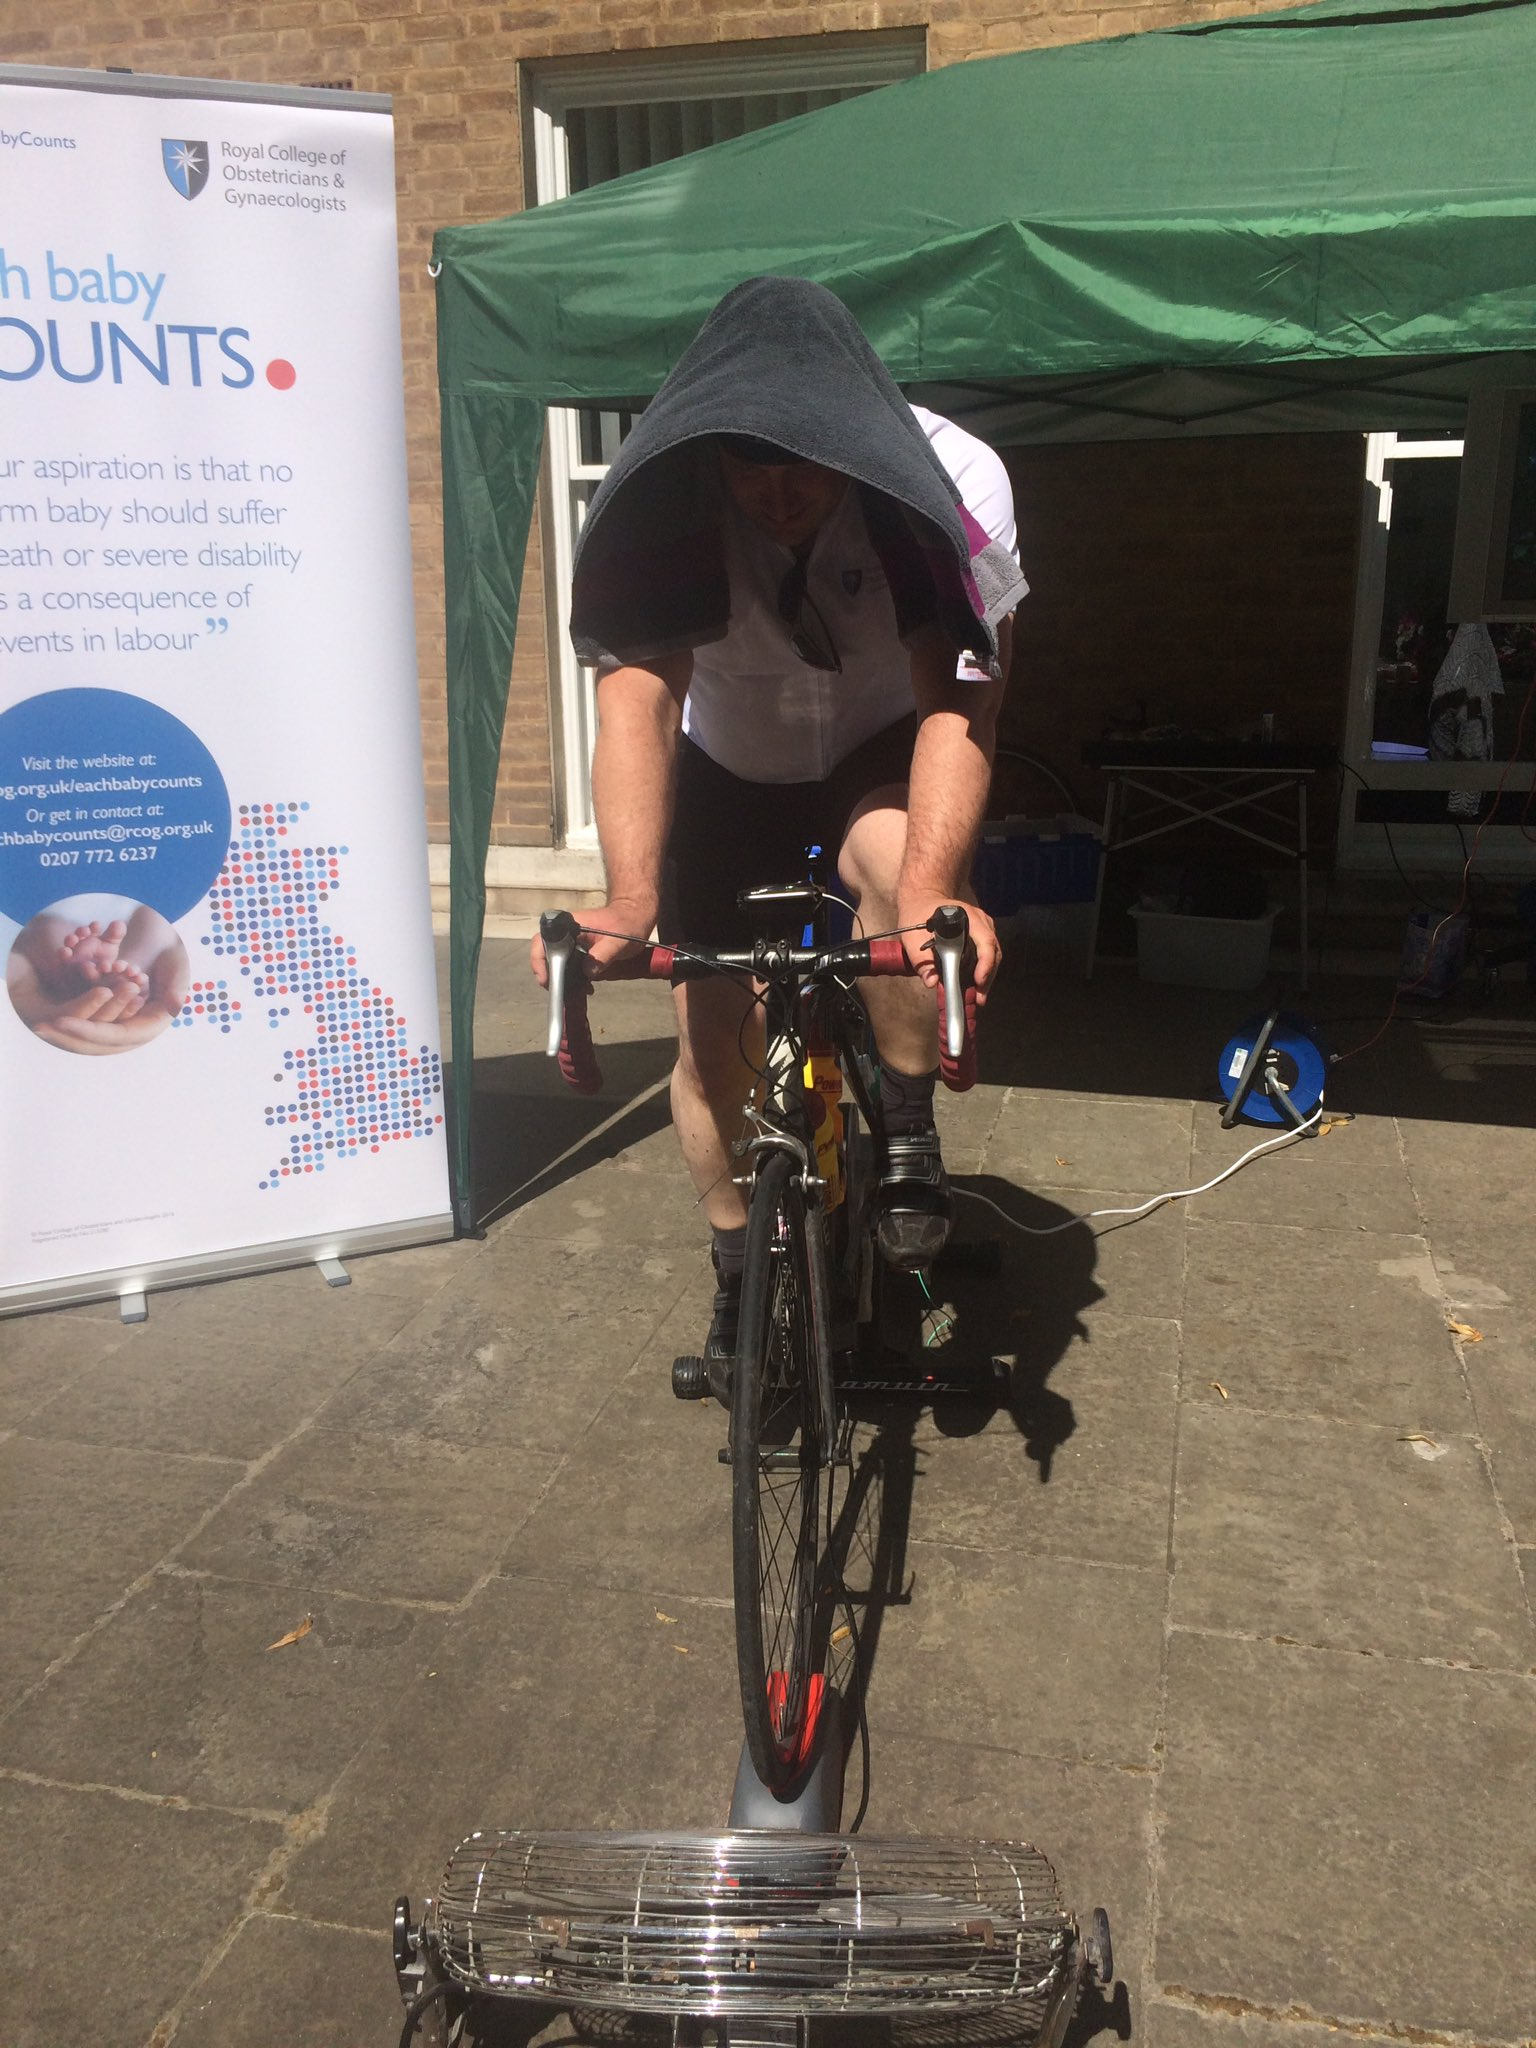 Ed is 46mi into his 100mi #RideLondon static bike challenge for #EachBabyCounts https://t.co/yhVQ5qFrbd https://t.co/Ewgn6cOfij